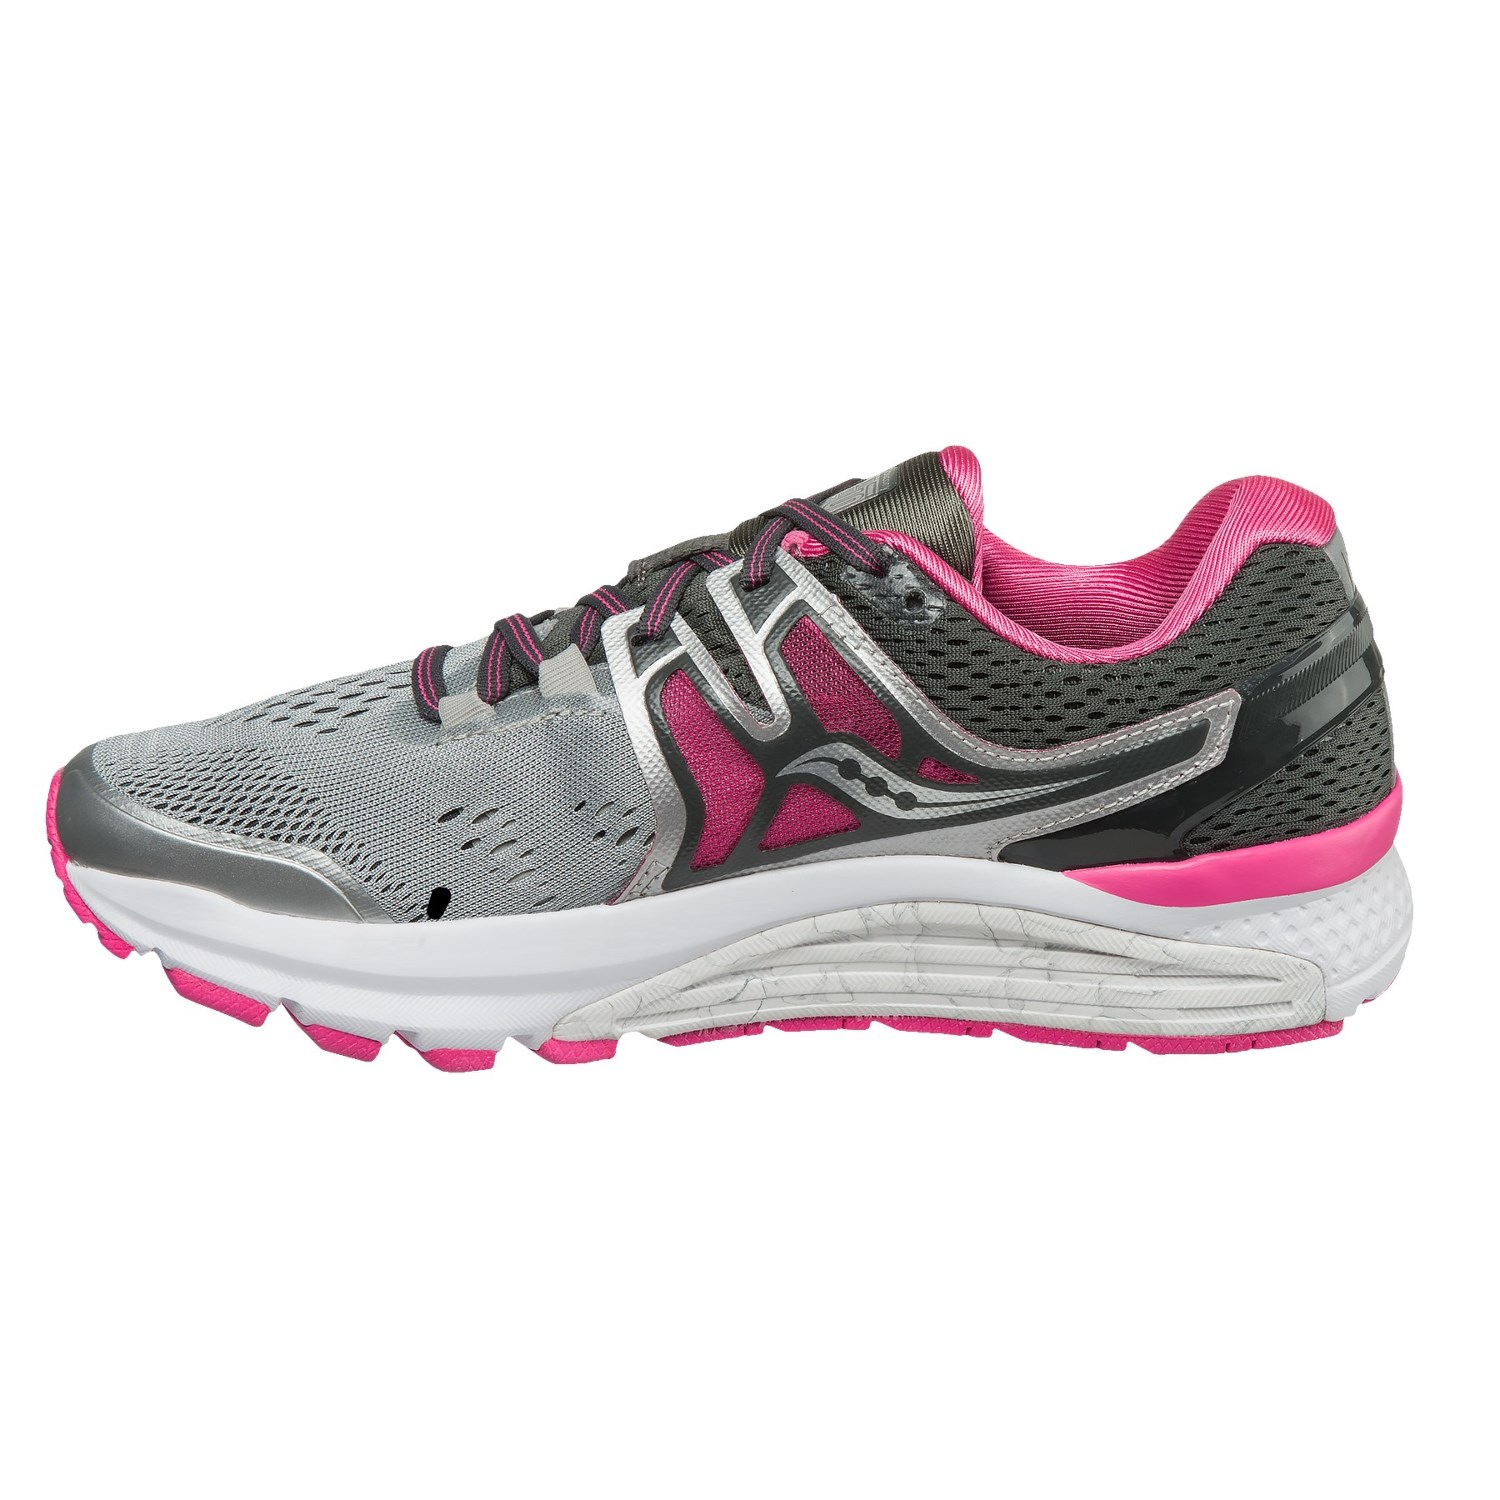 7d14d9da42a4 Saucony Hurricane ISO 3 Running Shoes (For Women) - Save 81%